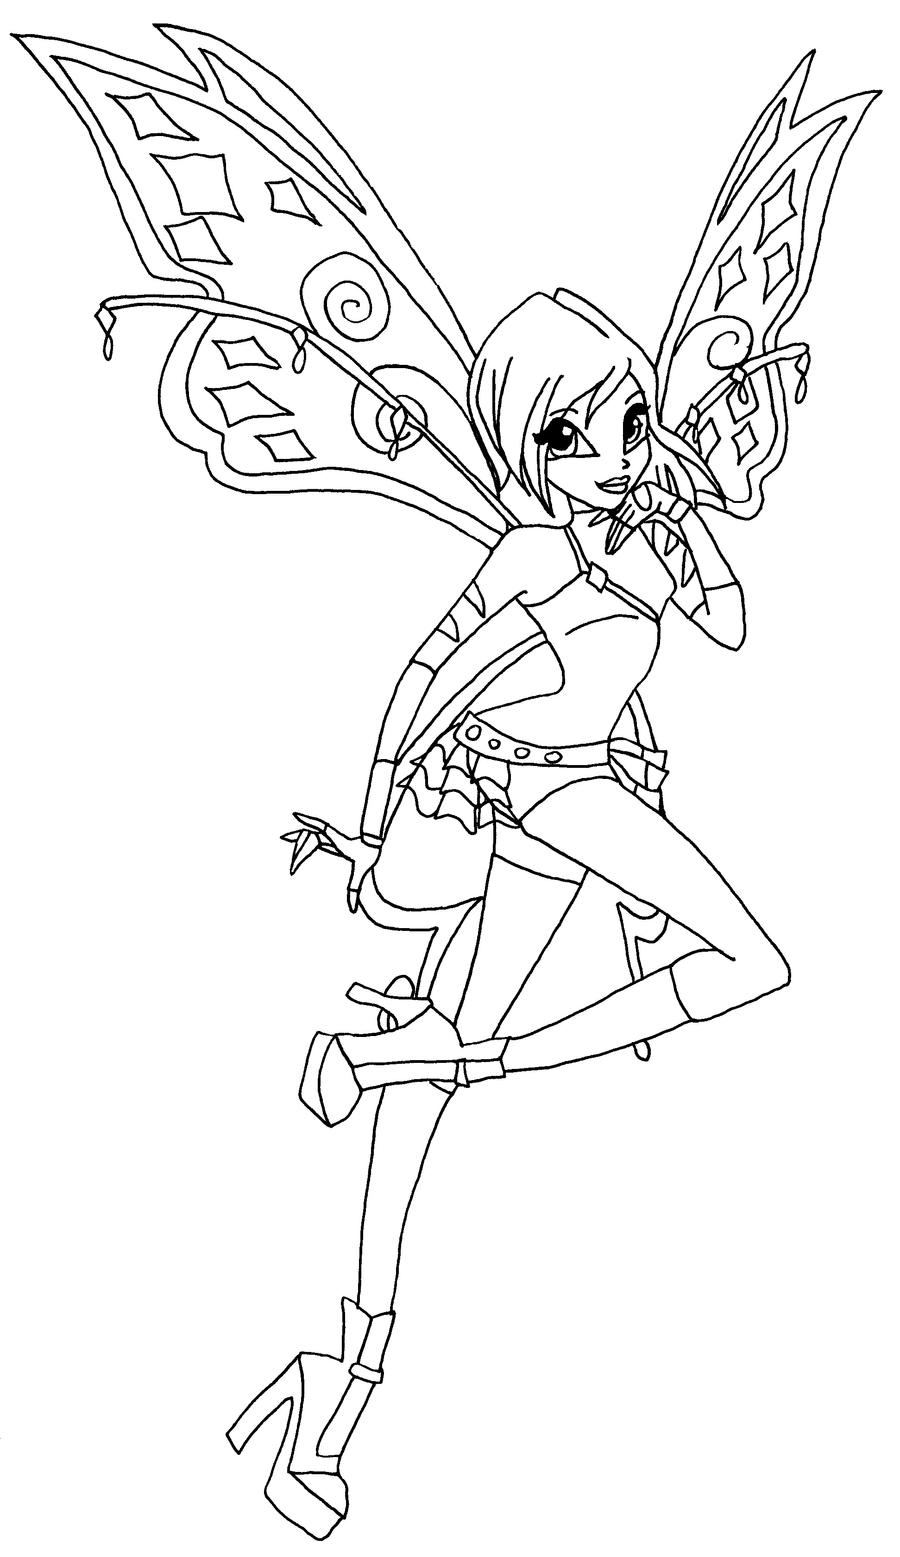 winx believix coloring pages | Winx Club Believix Coloring Pages Winx Club Power Of ...